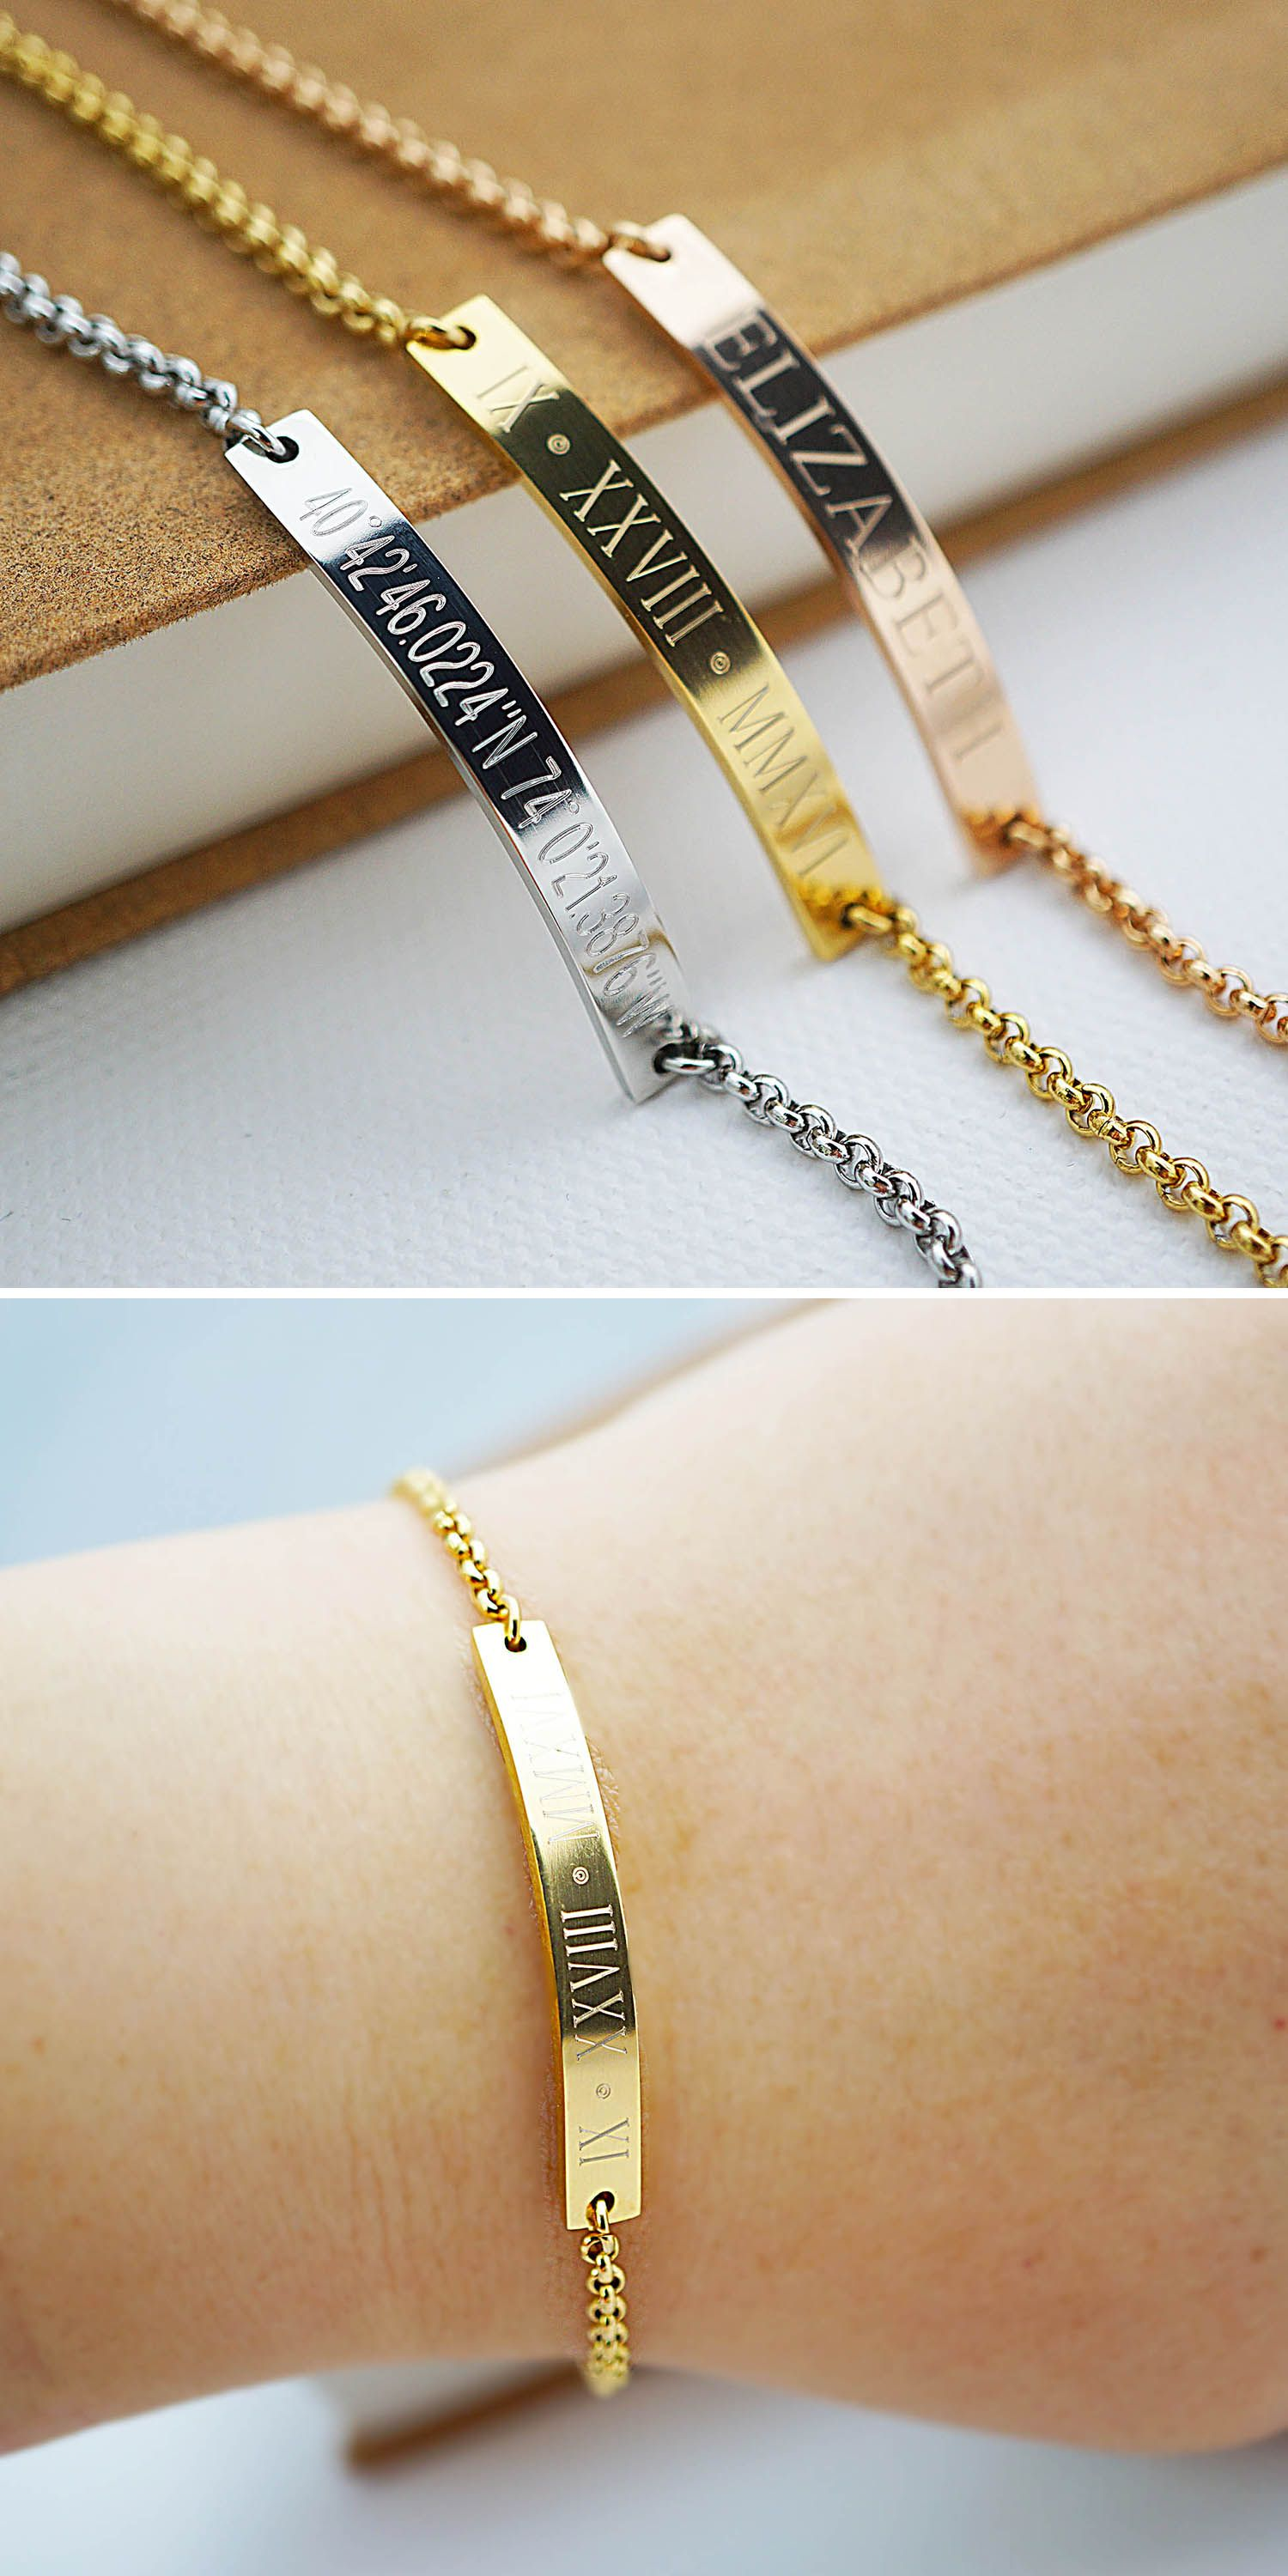 bar store bangles personalized bracelets laser name bracelet drop diy gift women com shipping initials jewelry buy bangle custom product gold s for aliexpress engraving engraved